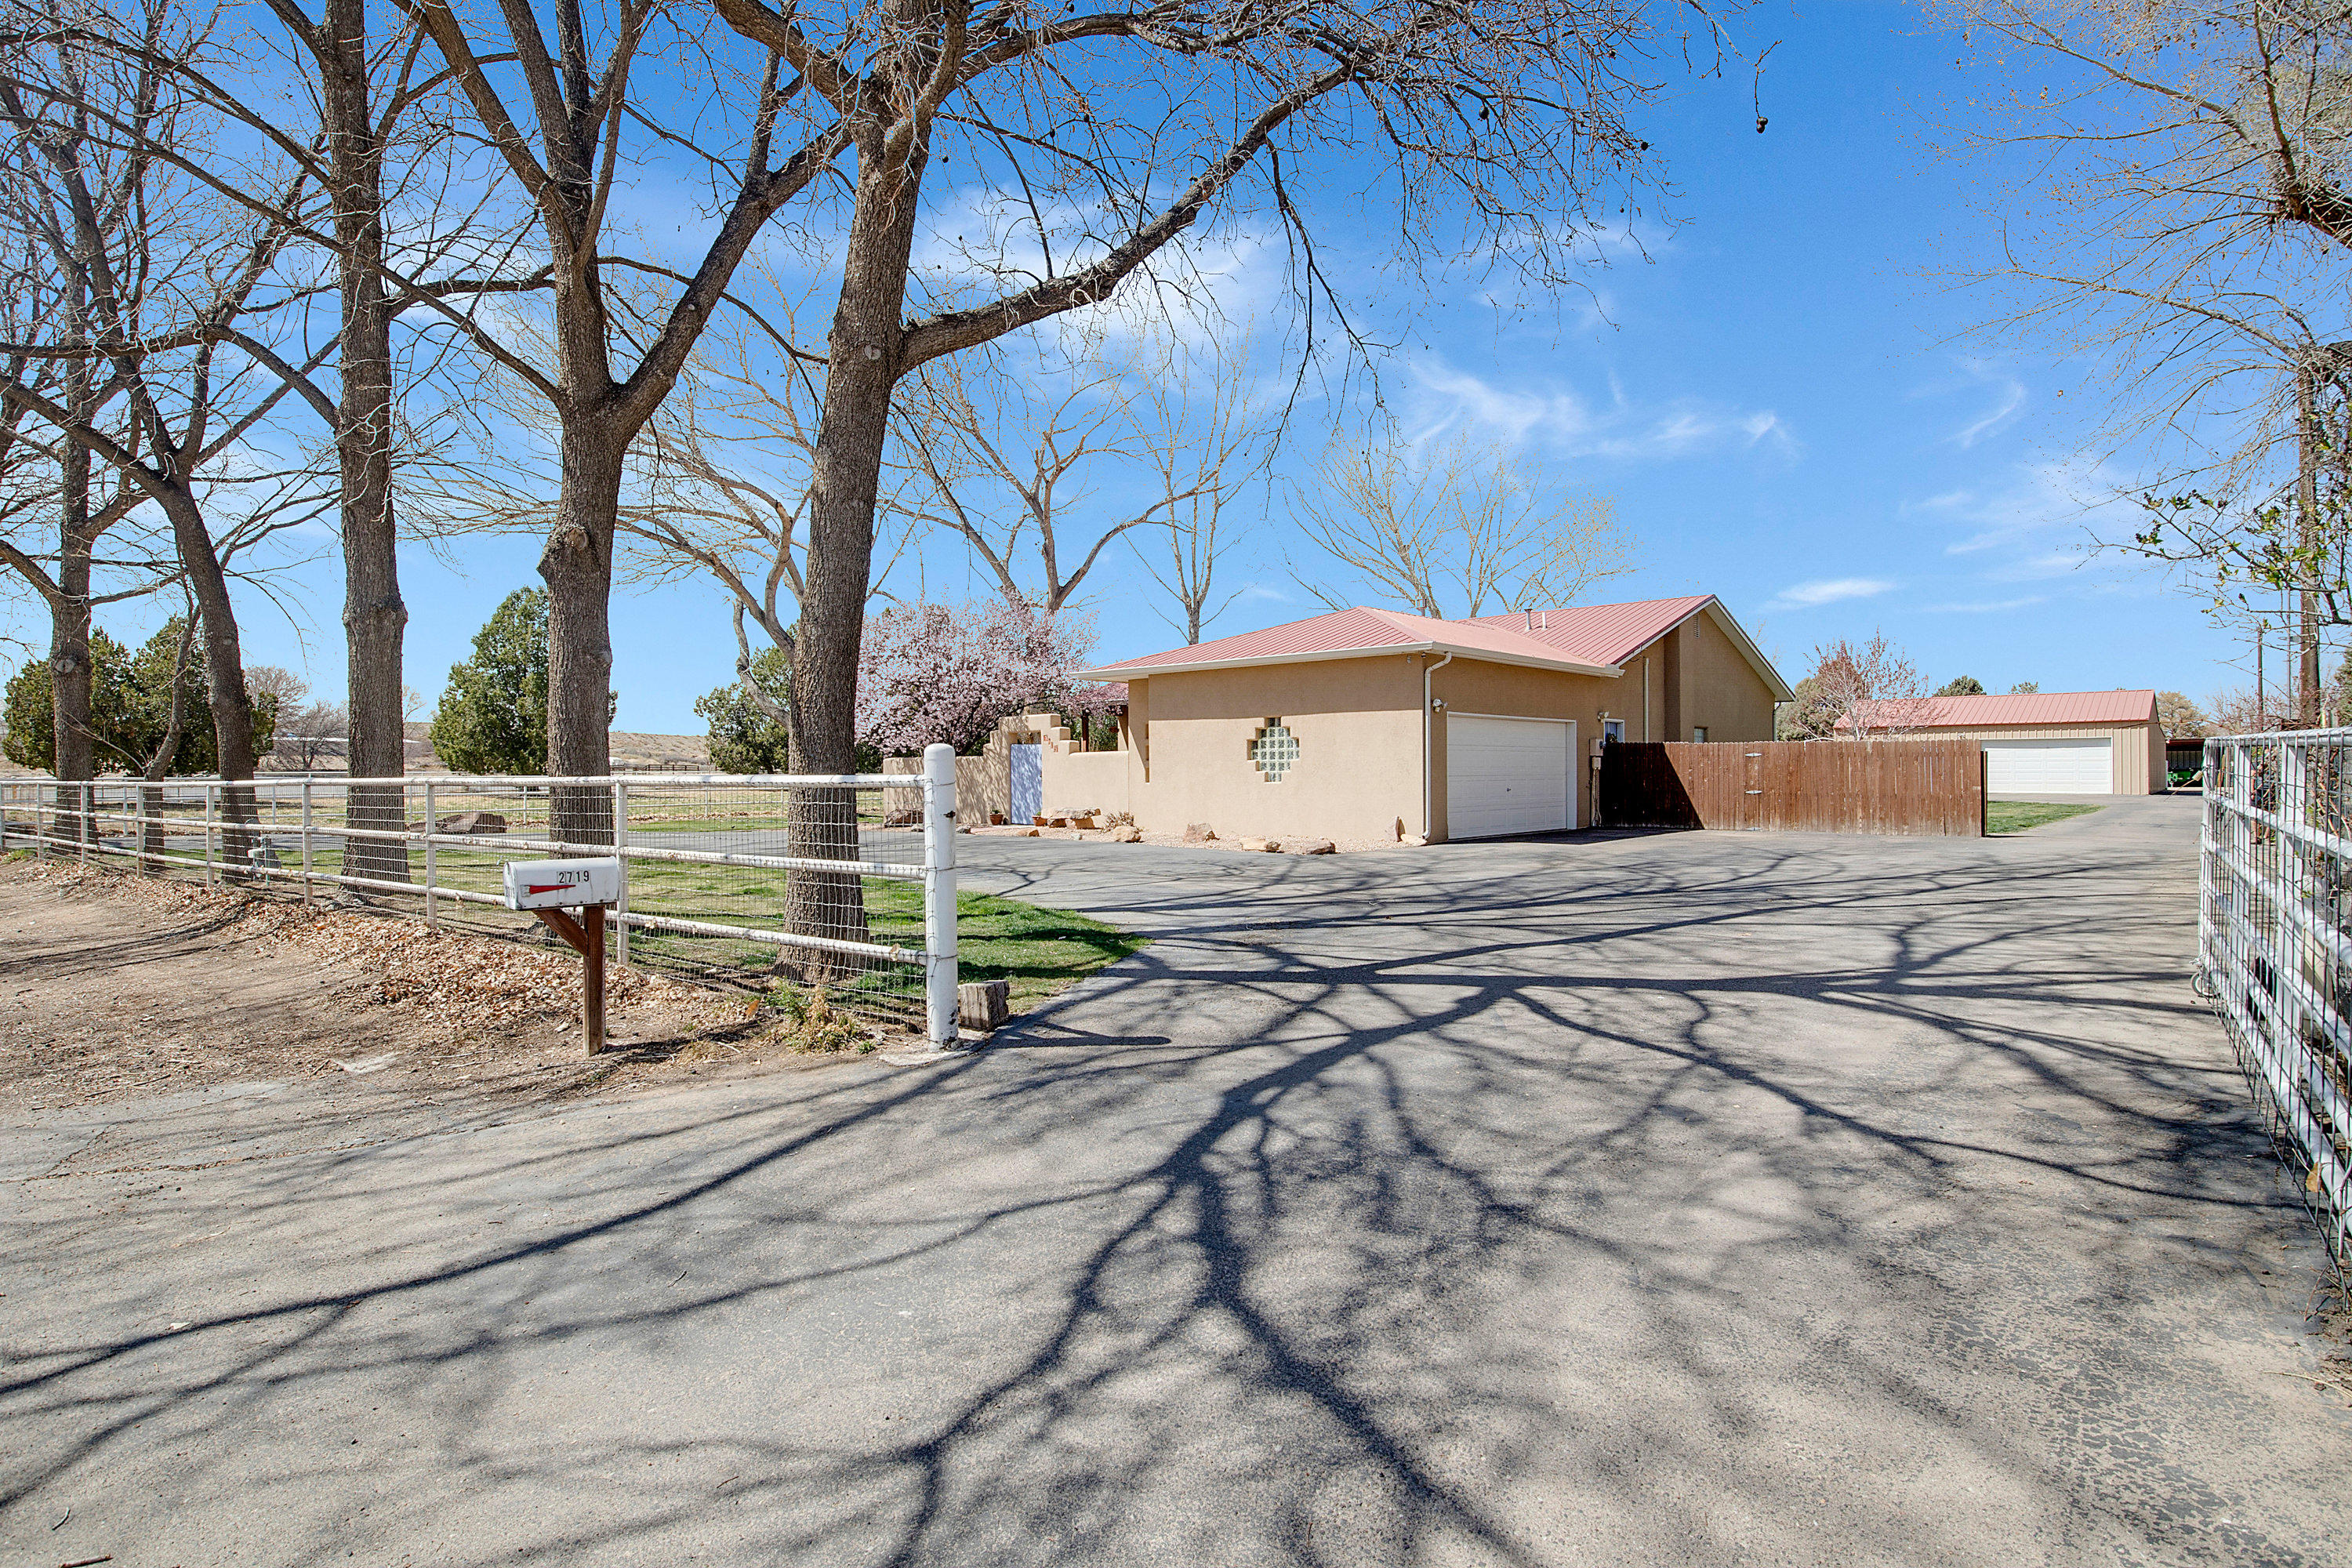 Outstanding, turn-key 2-acre horse property! Or great location for car enthusiast or hobbyist! Top quality, custom home with loads of charm- vigas, nichos, wood-grain tile floors (2014) in living areas & newer carpet (2016) in bedrooms. Huge, open great room with kiva fireplace, wonderful bright & airy family or hobby room, peaceful master suite with large bedroom, jetted tub, separate shower, double sinks, walk-in closet. Refrigerated air, radiant in-floor heat (even in oversized, 2-car garage with workshop & storage!) Plus horse facilities for 6 or more horses on fully pipe-fenced & MRGCD irrigated 2 acres with fruit & nut trees! AND a huge, detached 2000 SF shop space with heating & bathroom! Between garage & shop you could park 8 or more cars!